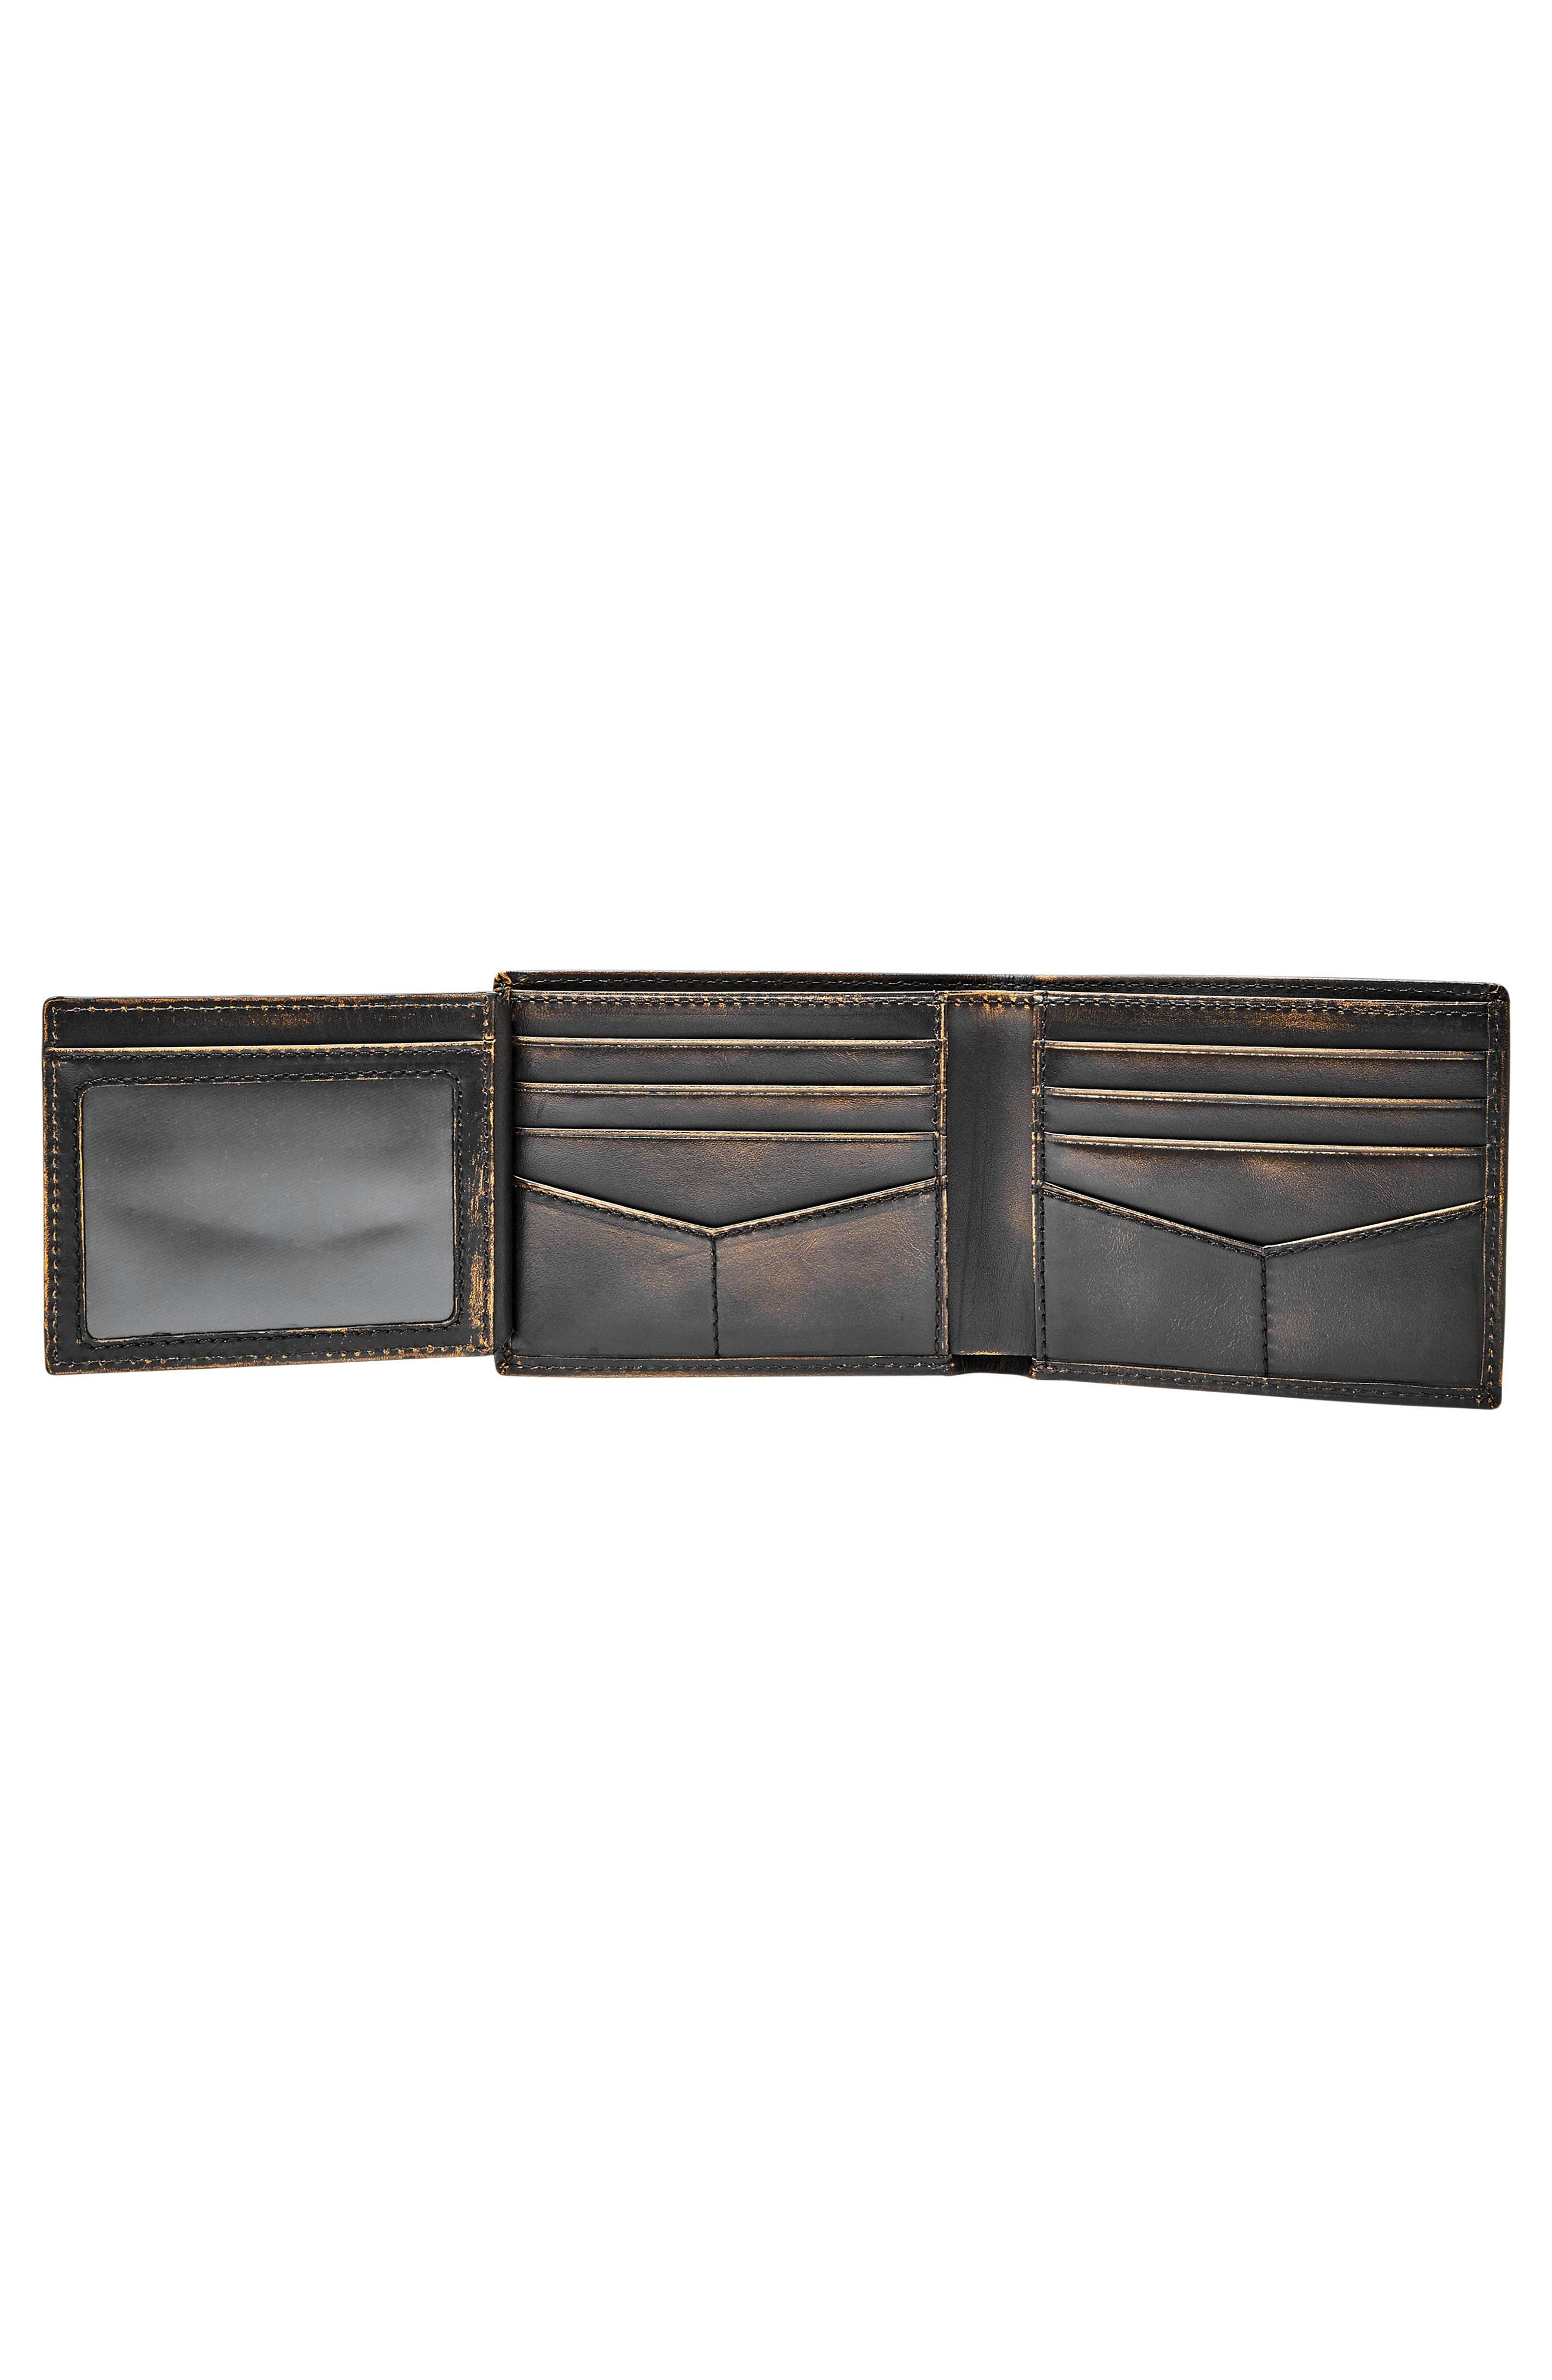 FOSSIL, Wade Leather Wallet, Alternate thumbnail 3, color, BLACK